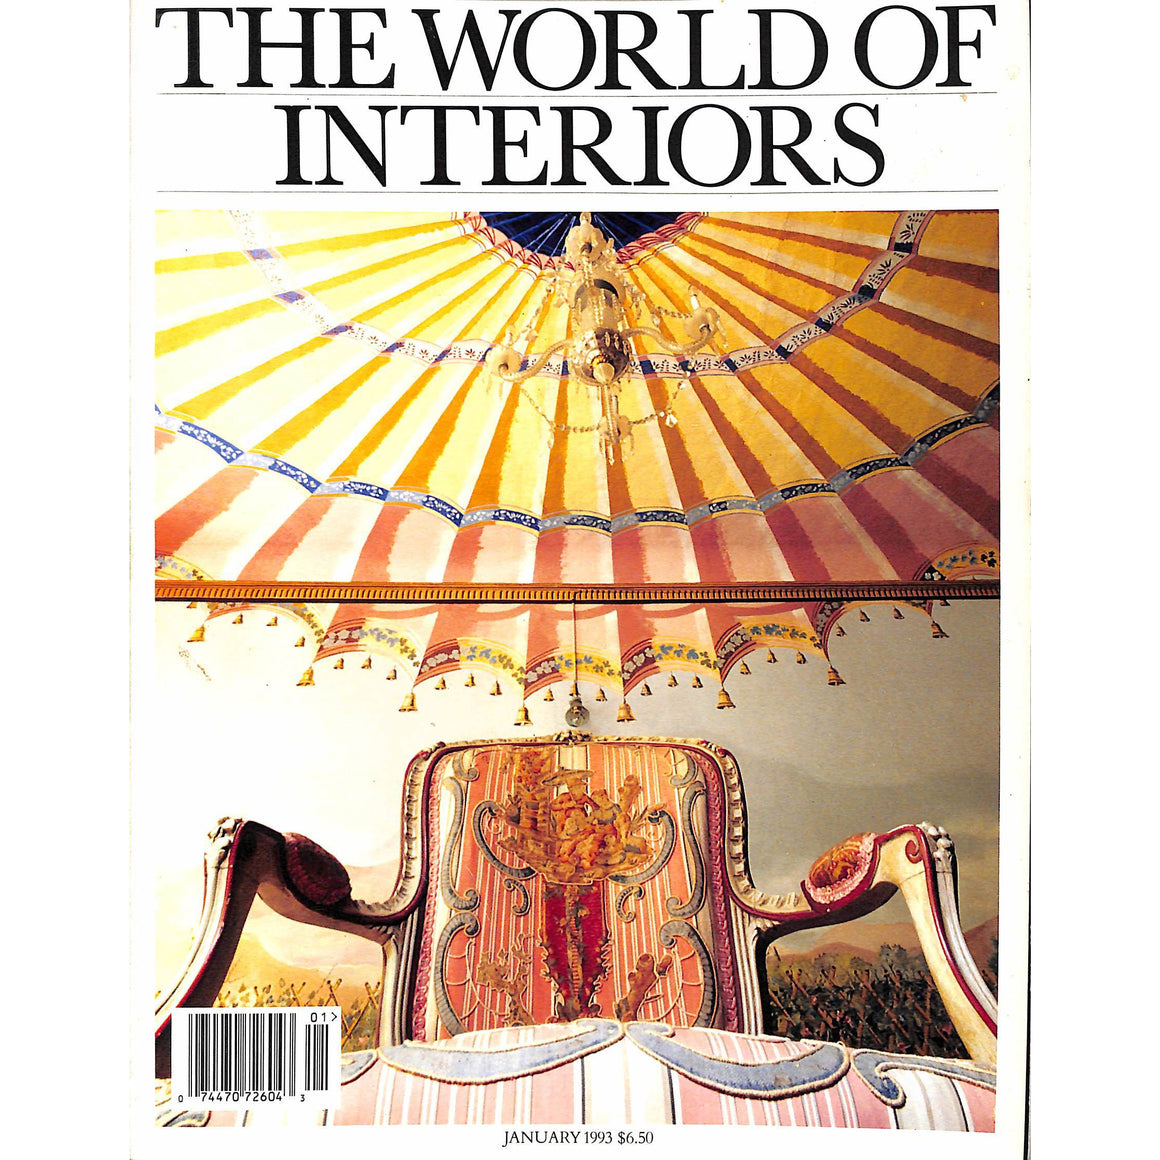 The World of Interiors January 1993 (SOLD!)